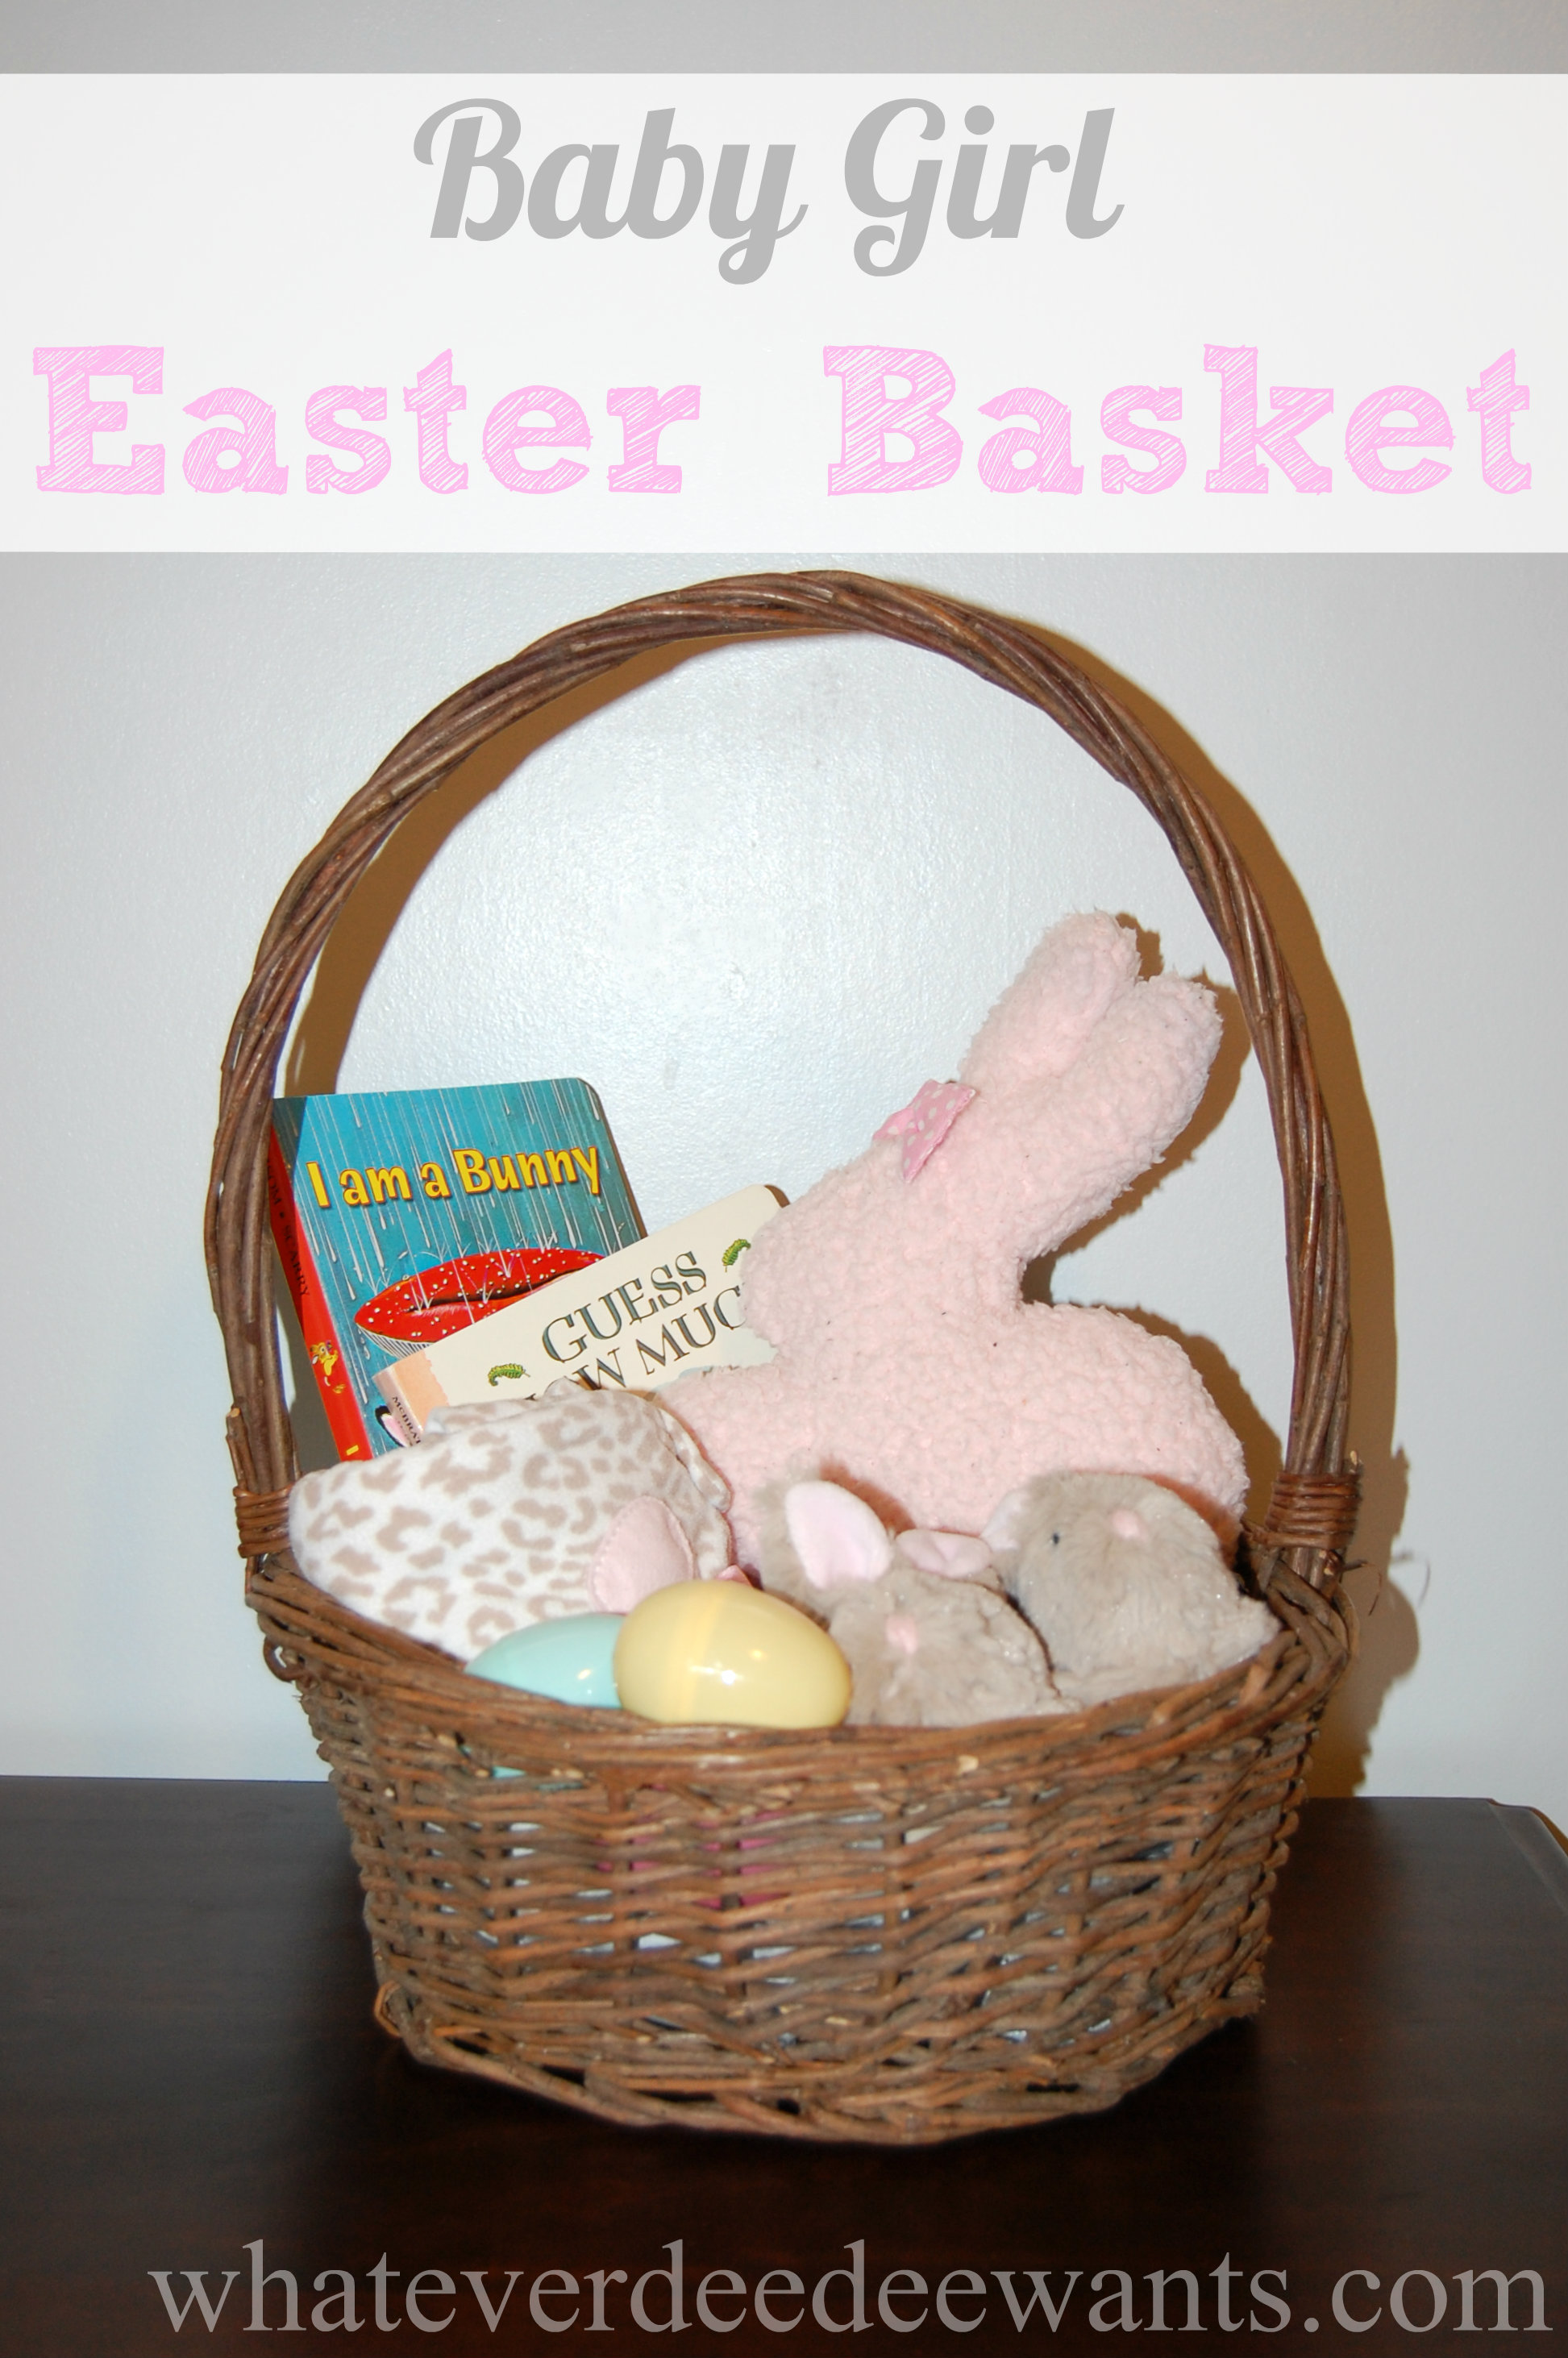 Peter rabbit no candy easter basket peter rabbit candy free easter basket negle Image collections